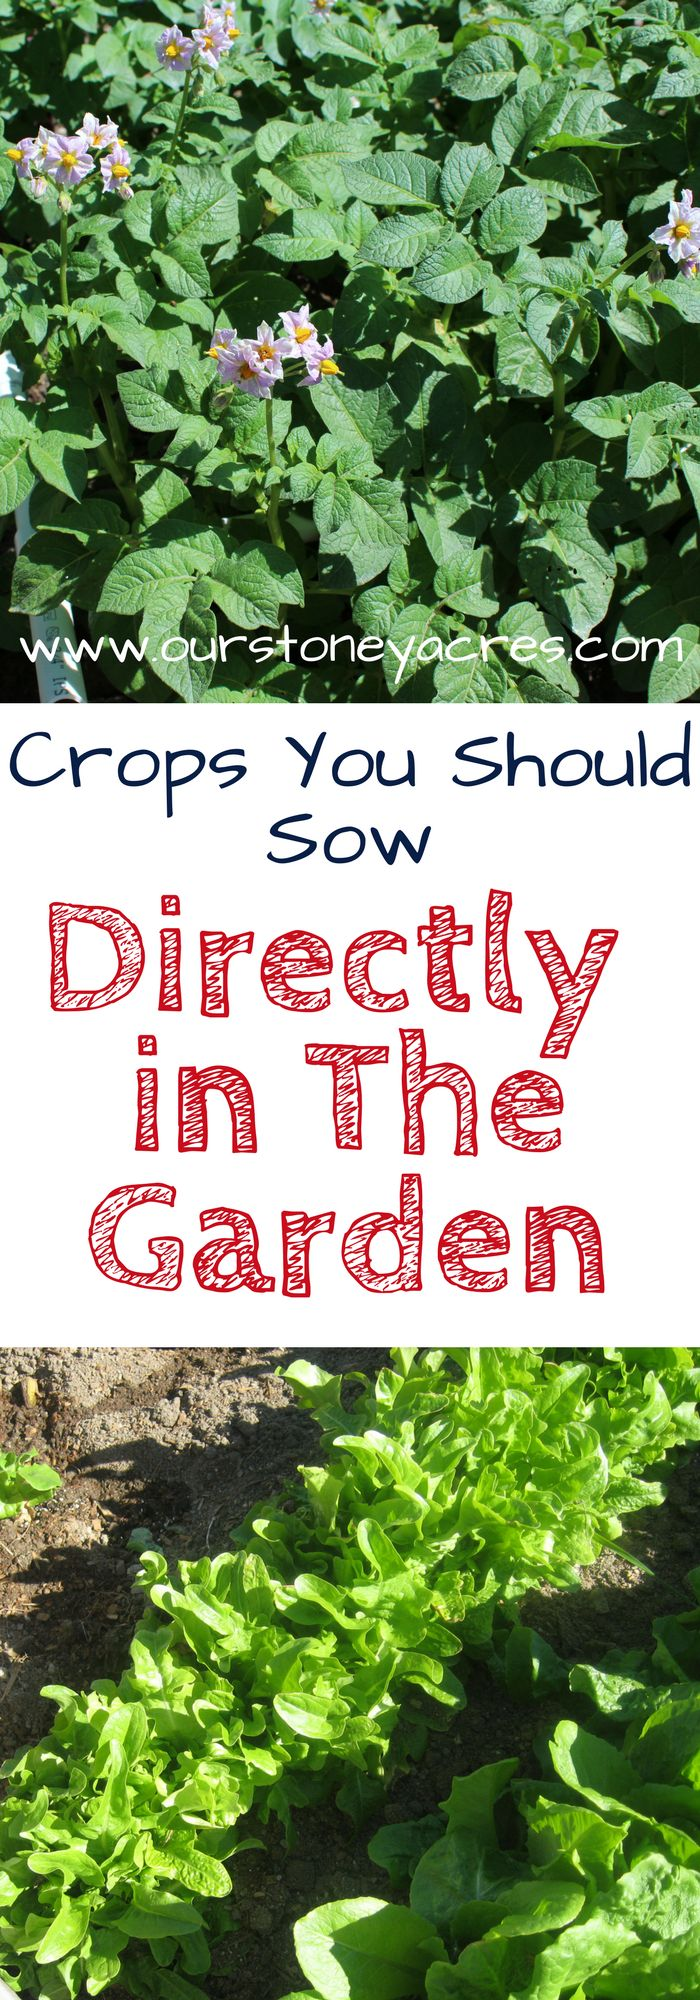 Crops you shouldn't bother starting indoors. There are some crops you shouldn't bother starting indoors. Instead they should be directly sown in the garden.